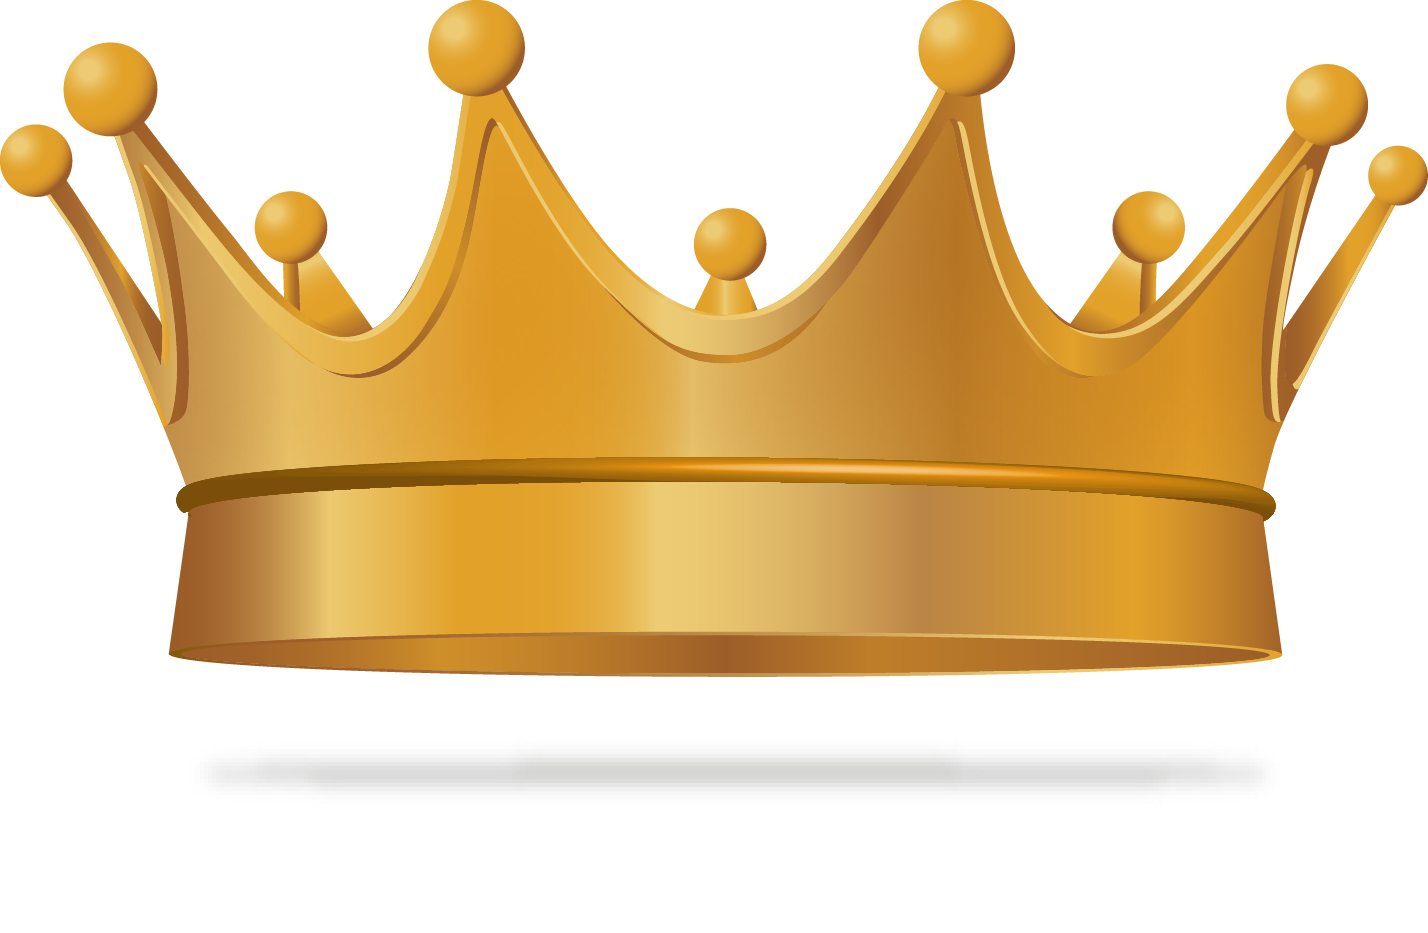 Euclidean exquisite transprent free. King crown vector png